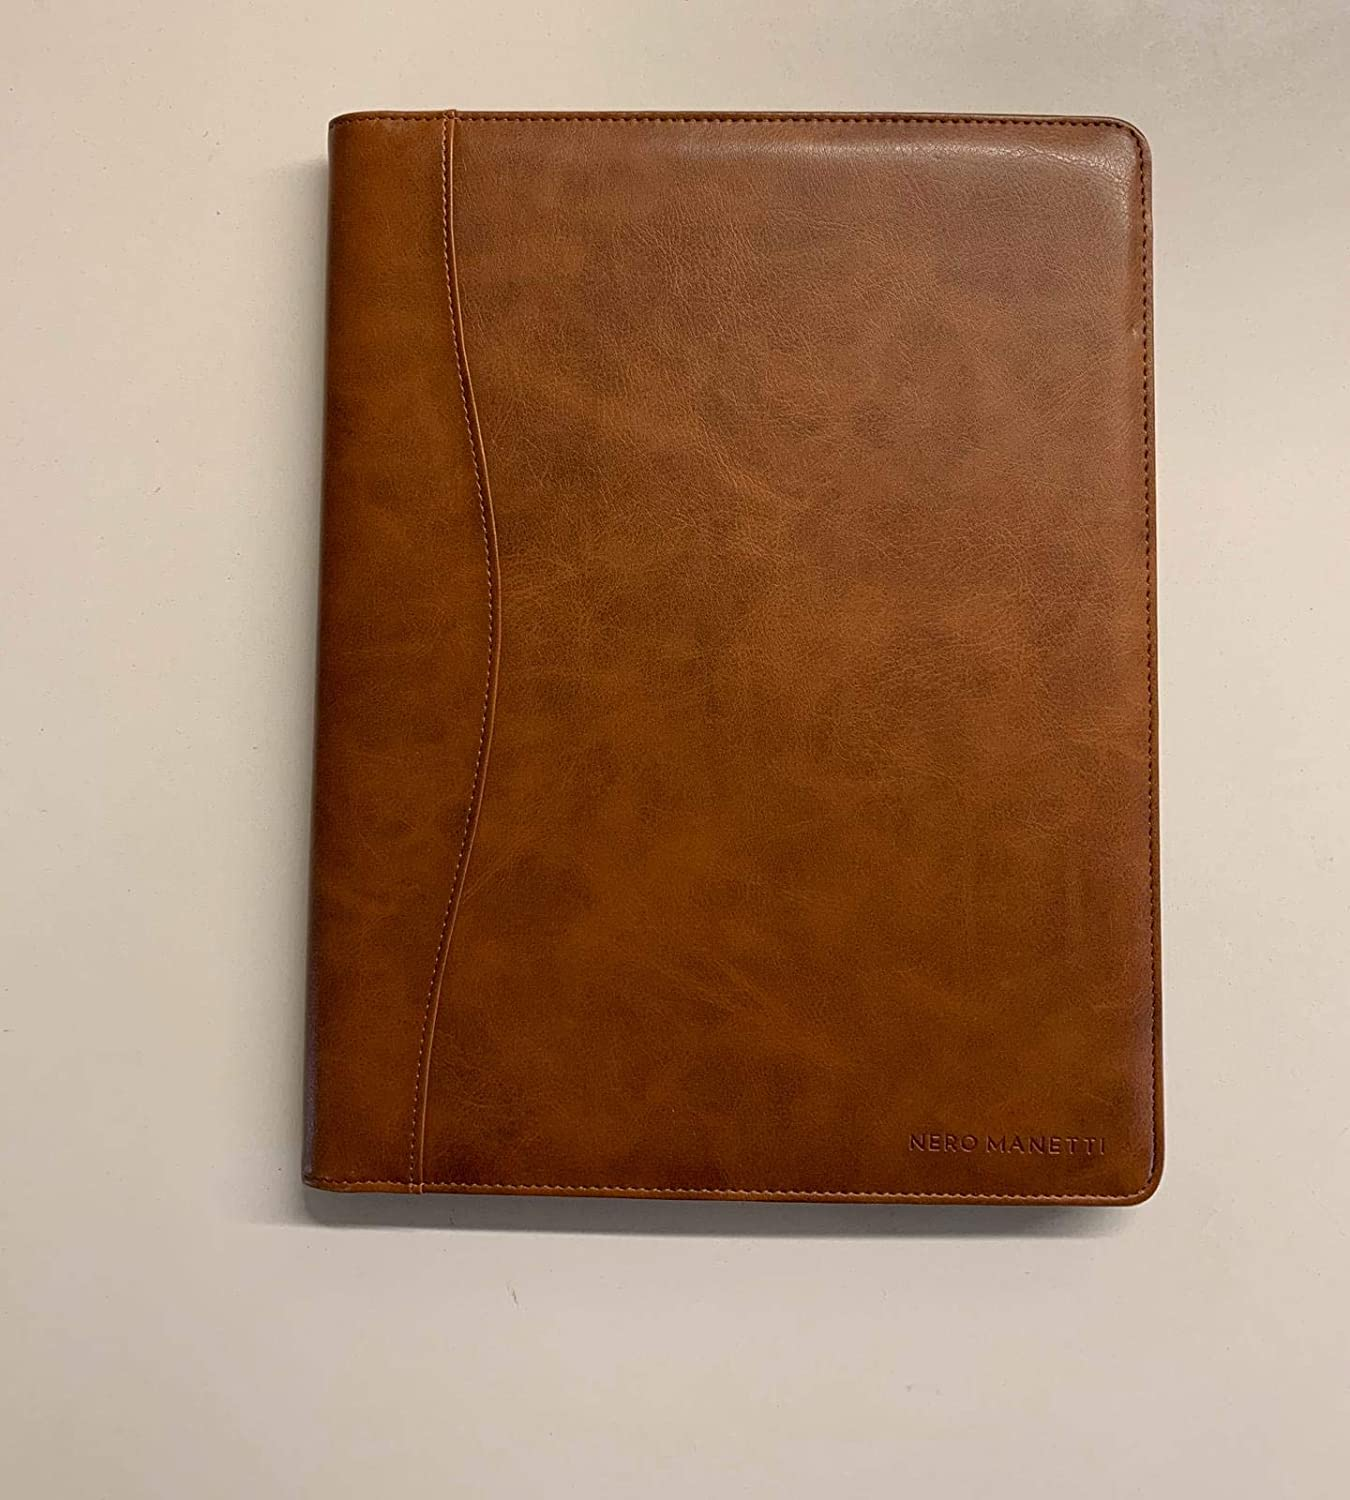 NERO MANETTI- Leather Portfolio Folder - Business PU Leather Portfolio Notepad Holder for Resumes, Legal Pad Portfolio Executive Binder, Professional Padfolio Notebook for Women/Men (Brown)